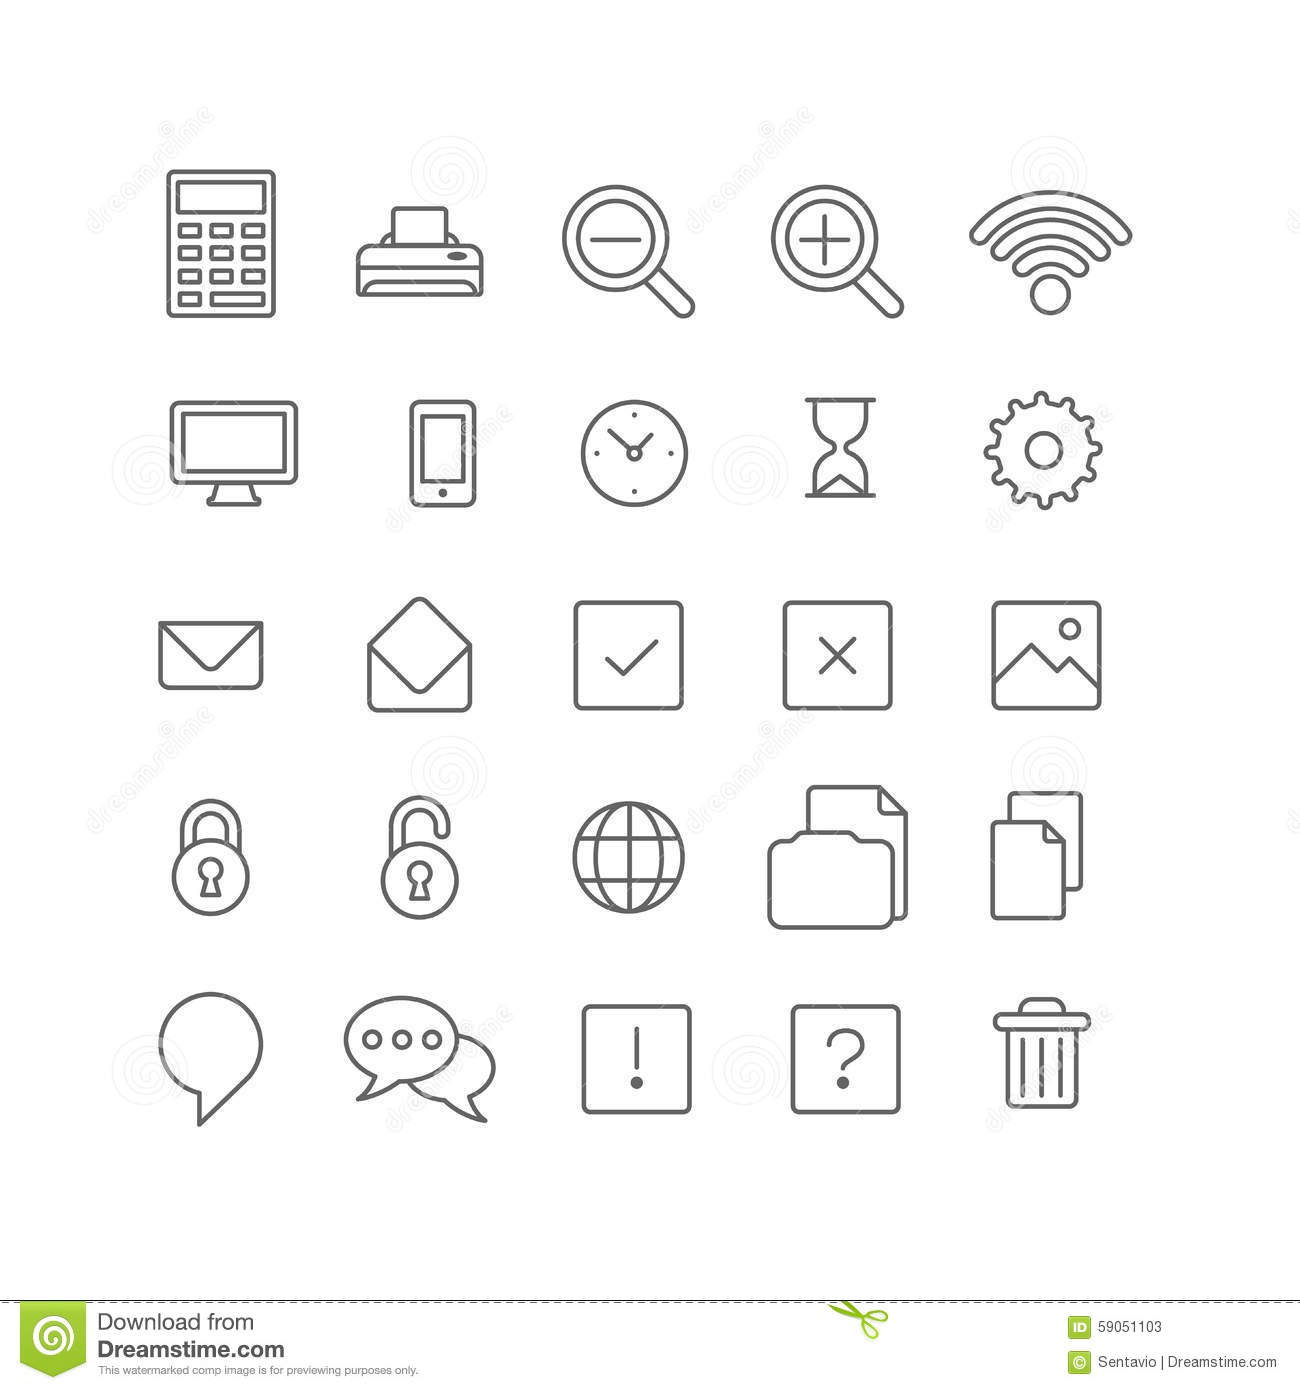 Line Drawing Software Free Download : Lineart vector flat web site mobile interface app icons